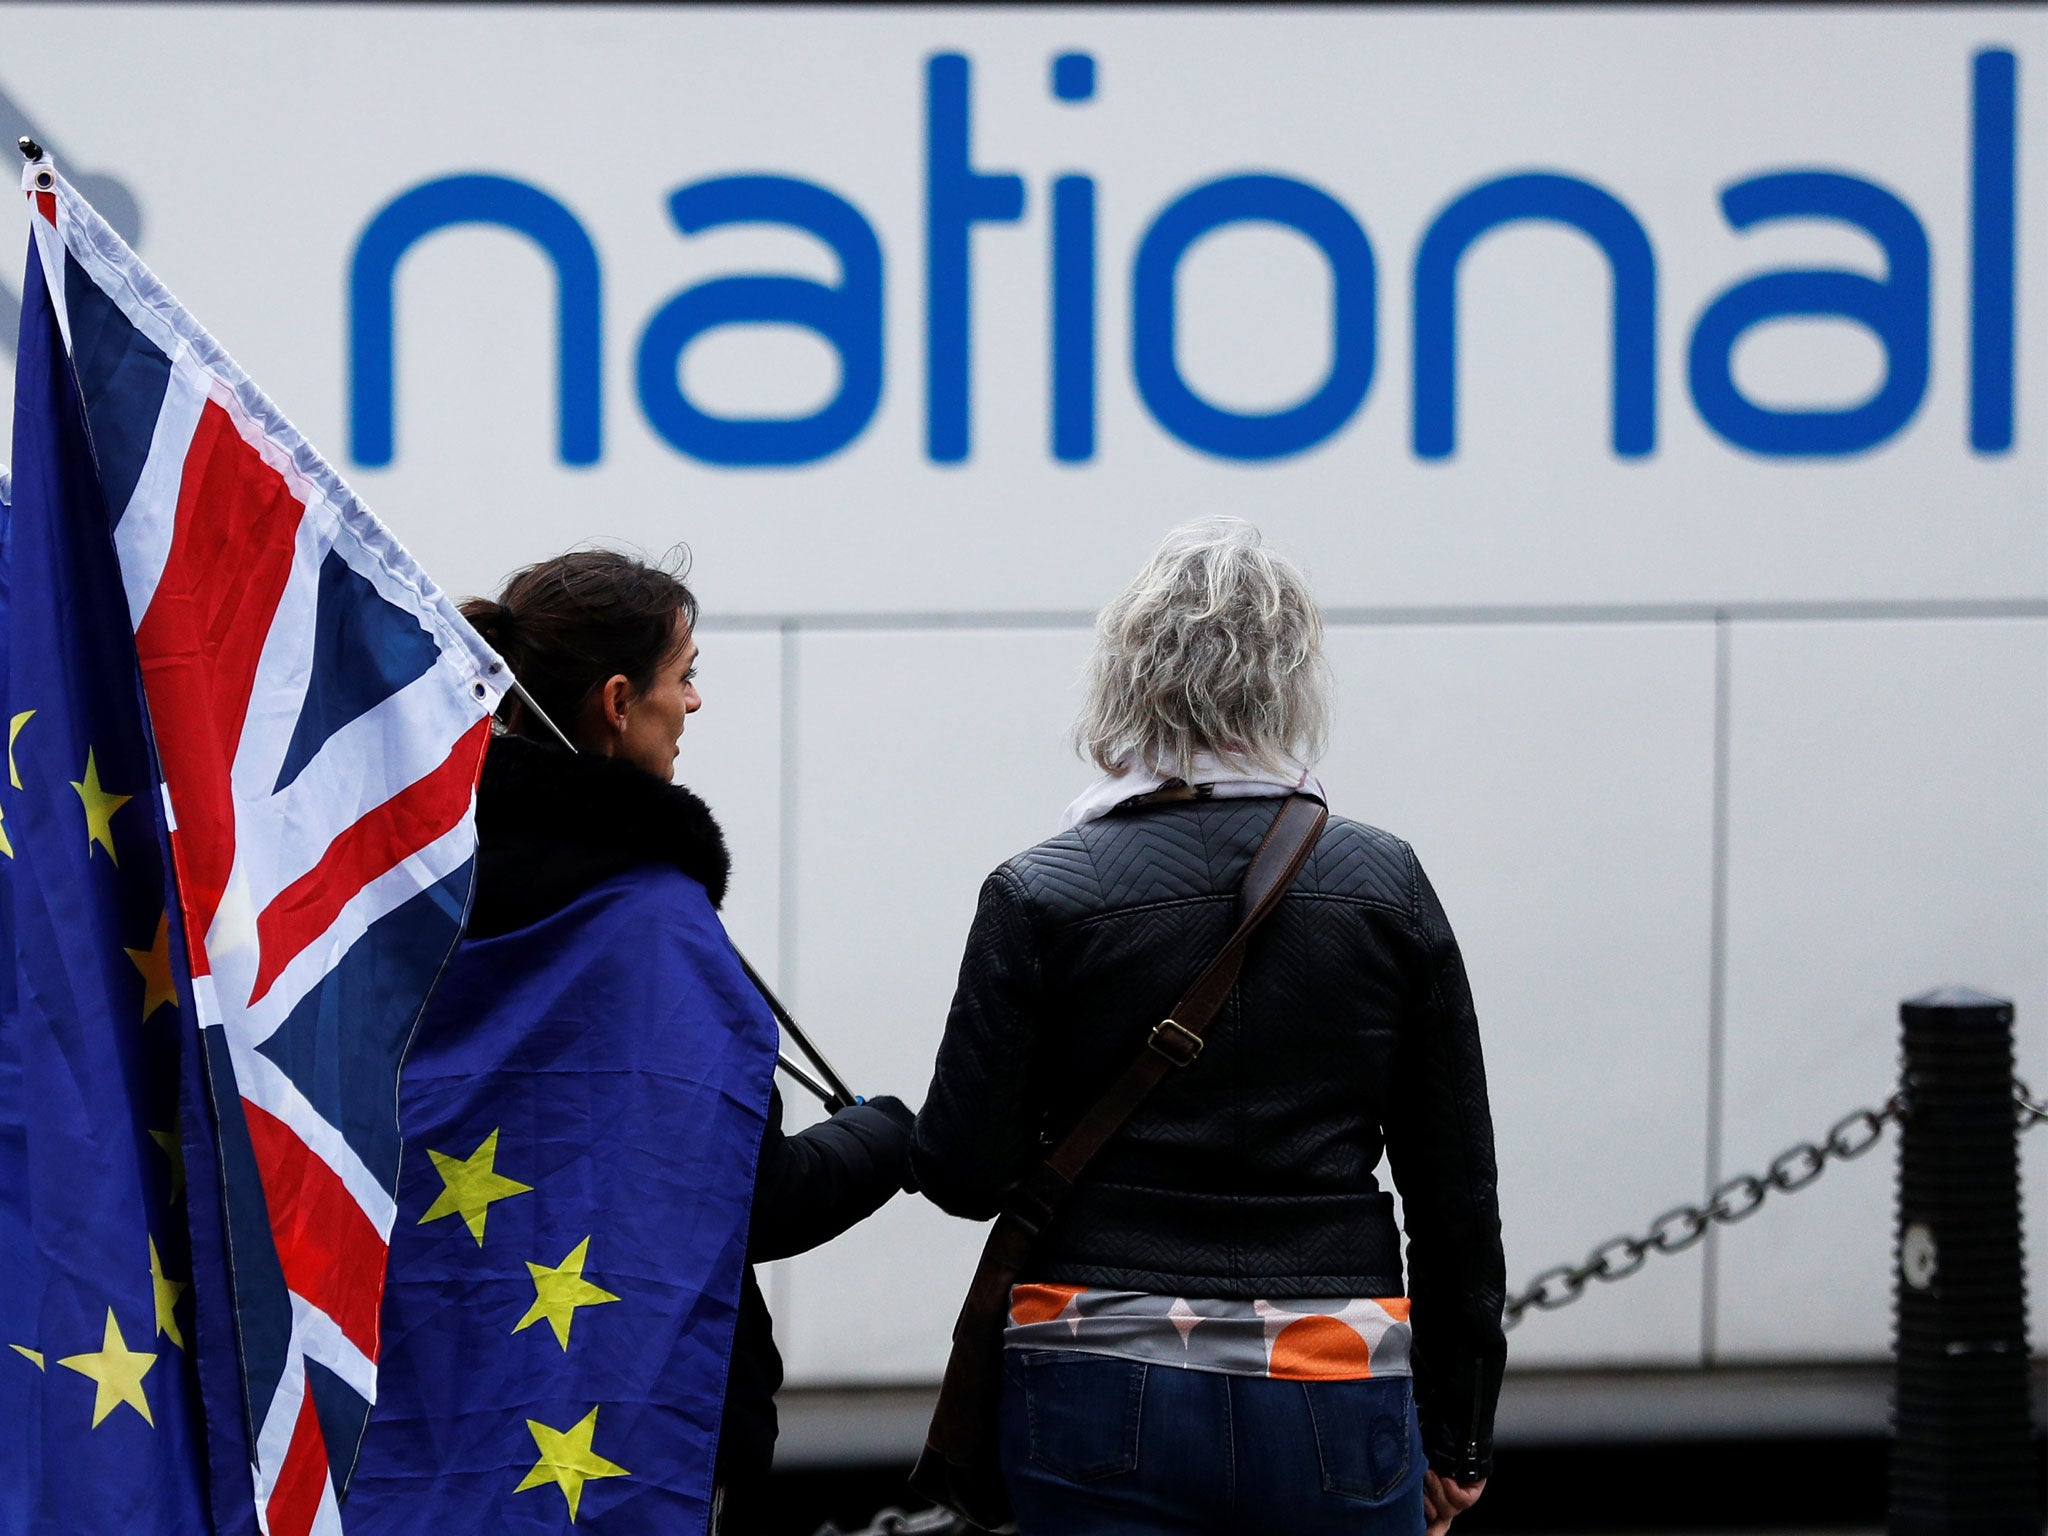 EU nationals still allowed to bring foreign partners to UK despite Government ruling, European court rules